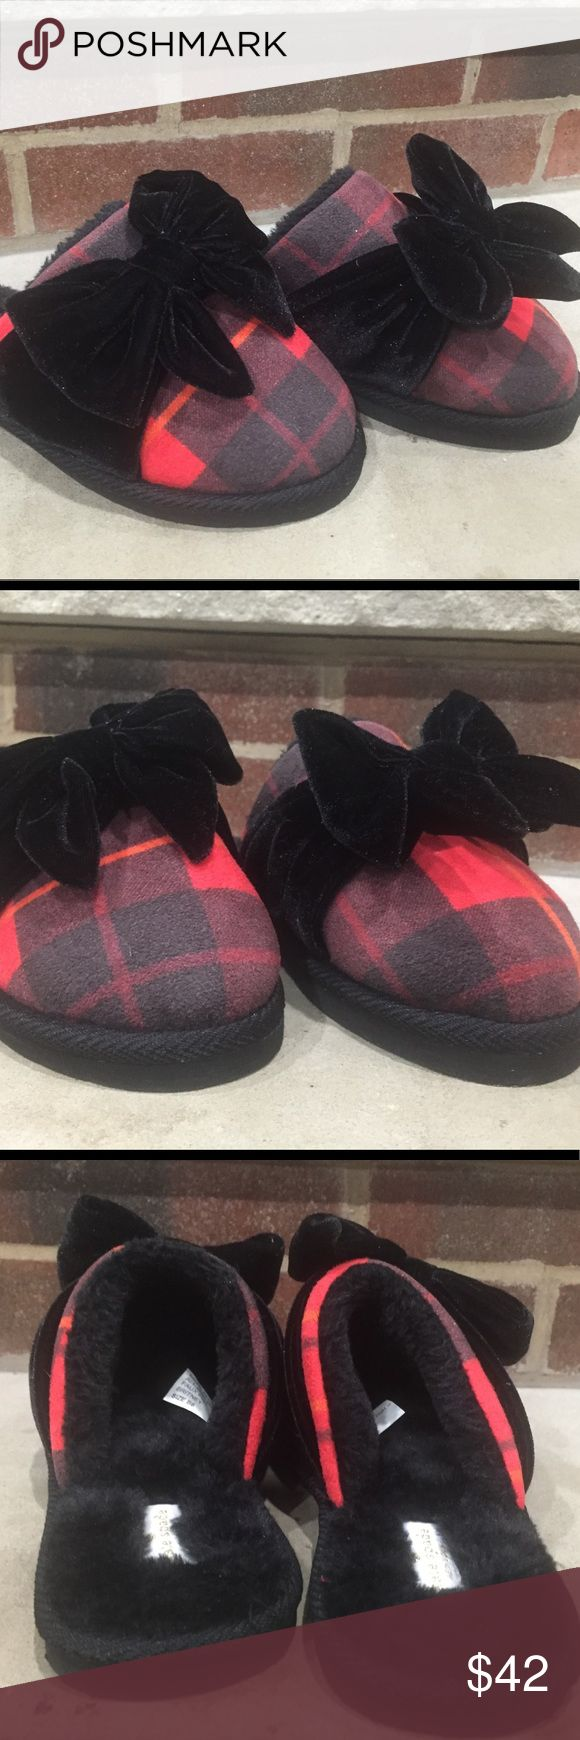 """Kate Spade NY Britney Plaid Slipper Faux Fur w Bow Kate Spade """"Britney"""" slipper  🔹Plaid top w/ round toe 🔹Faux fur lining 🔹Bow detail on top 🎀 🔹Kate Spade branding tag on heel  Brand new. Let us know if you have any questions. Thank you. kate spade Shoes Slippers"""